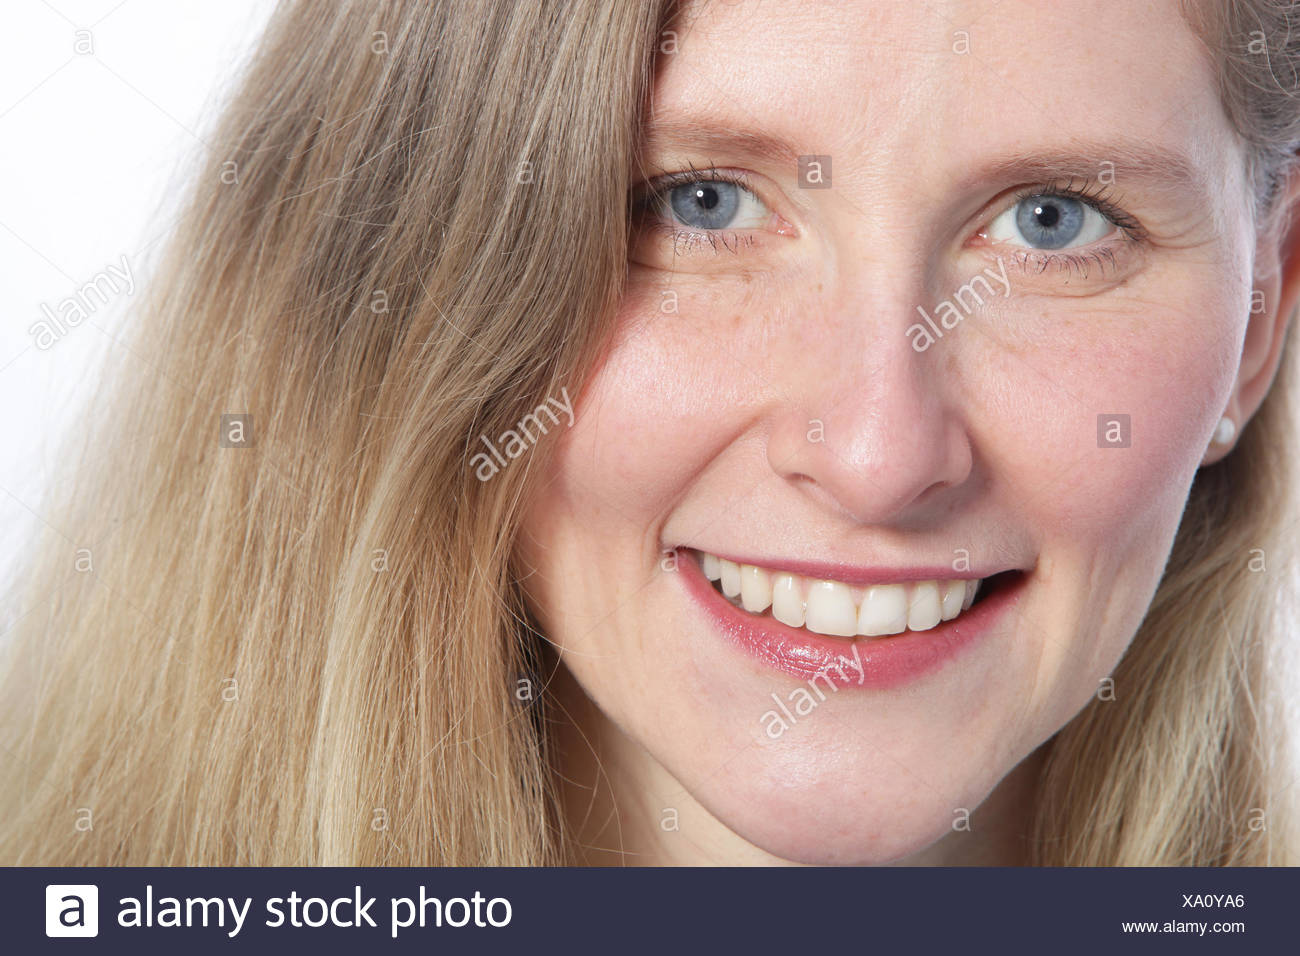 Close up of an attractive woman with blue eyes - Stock Image